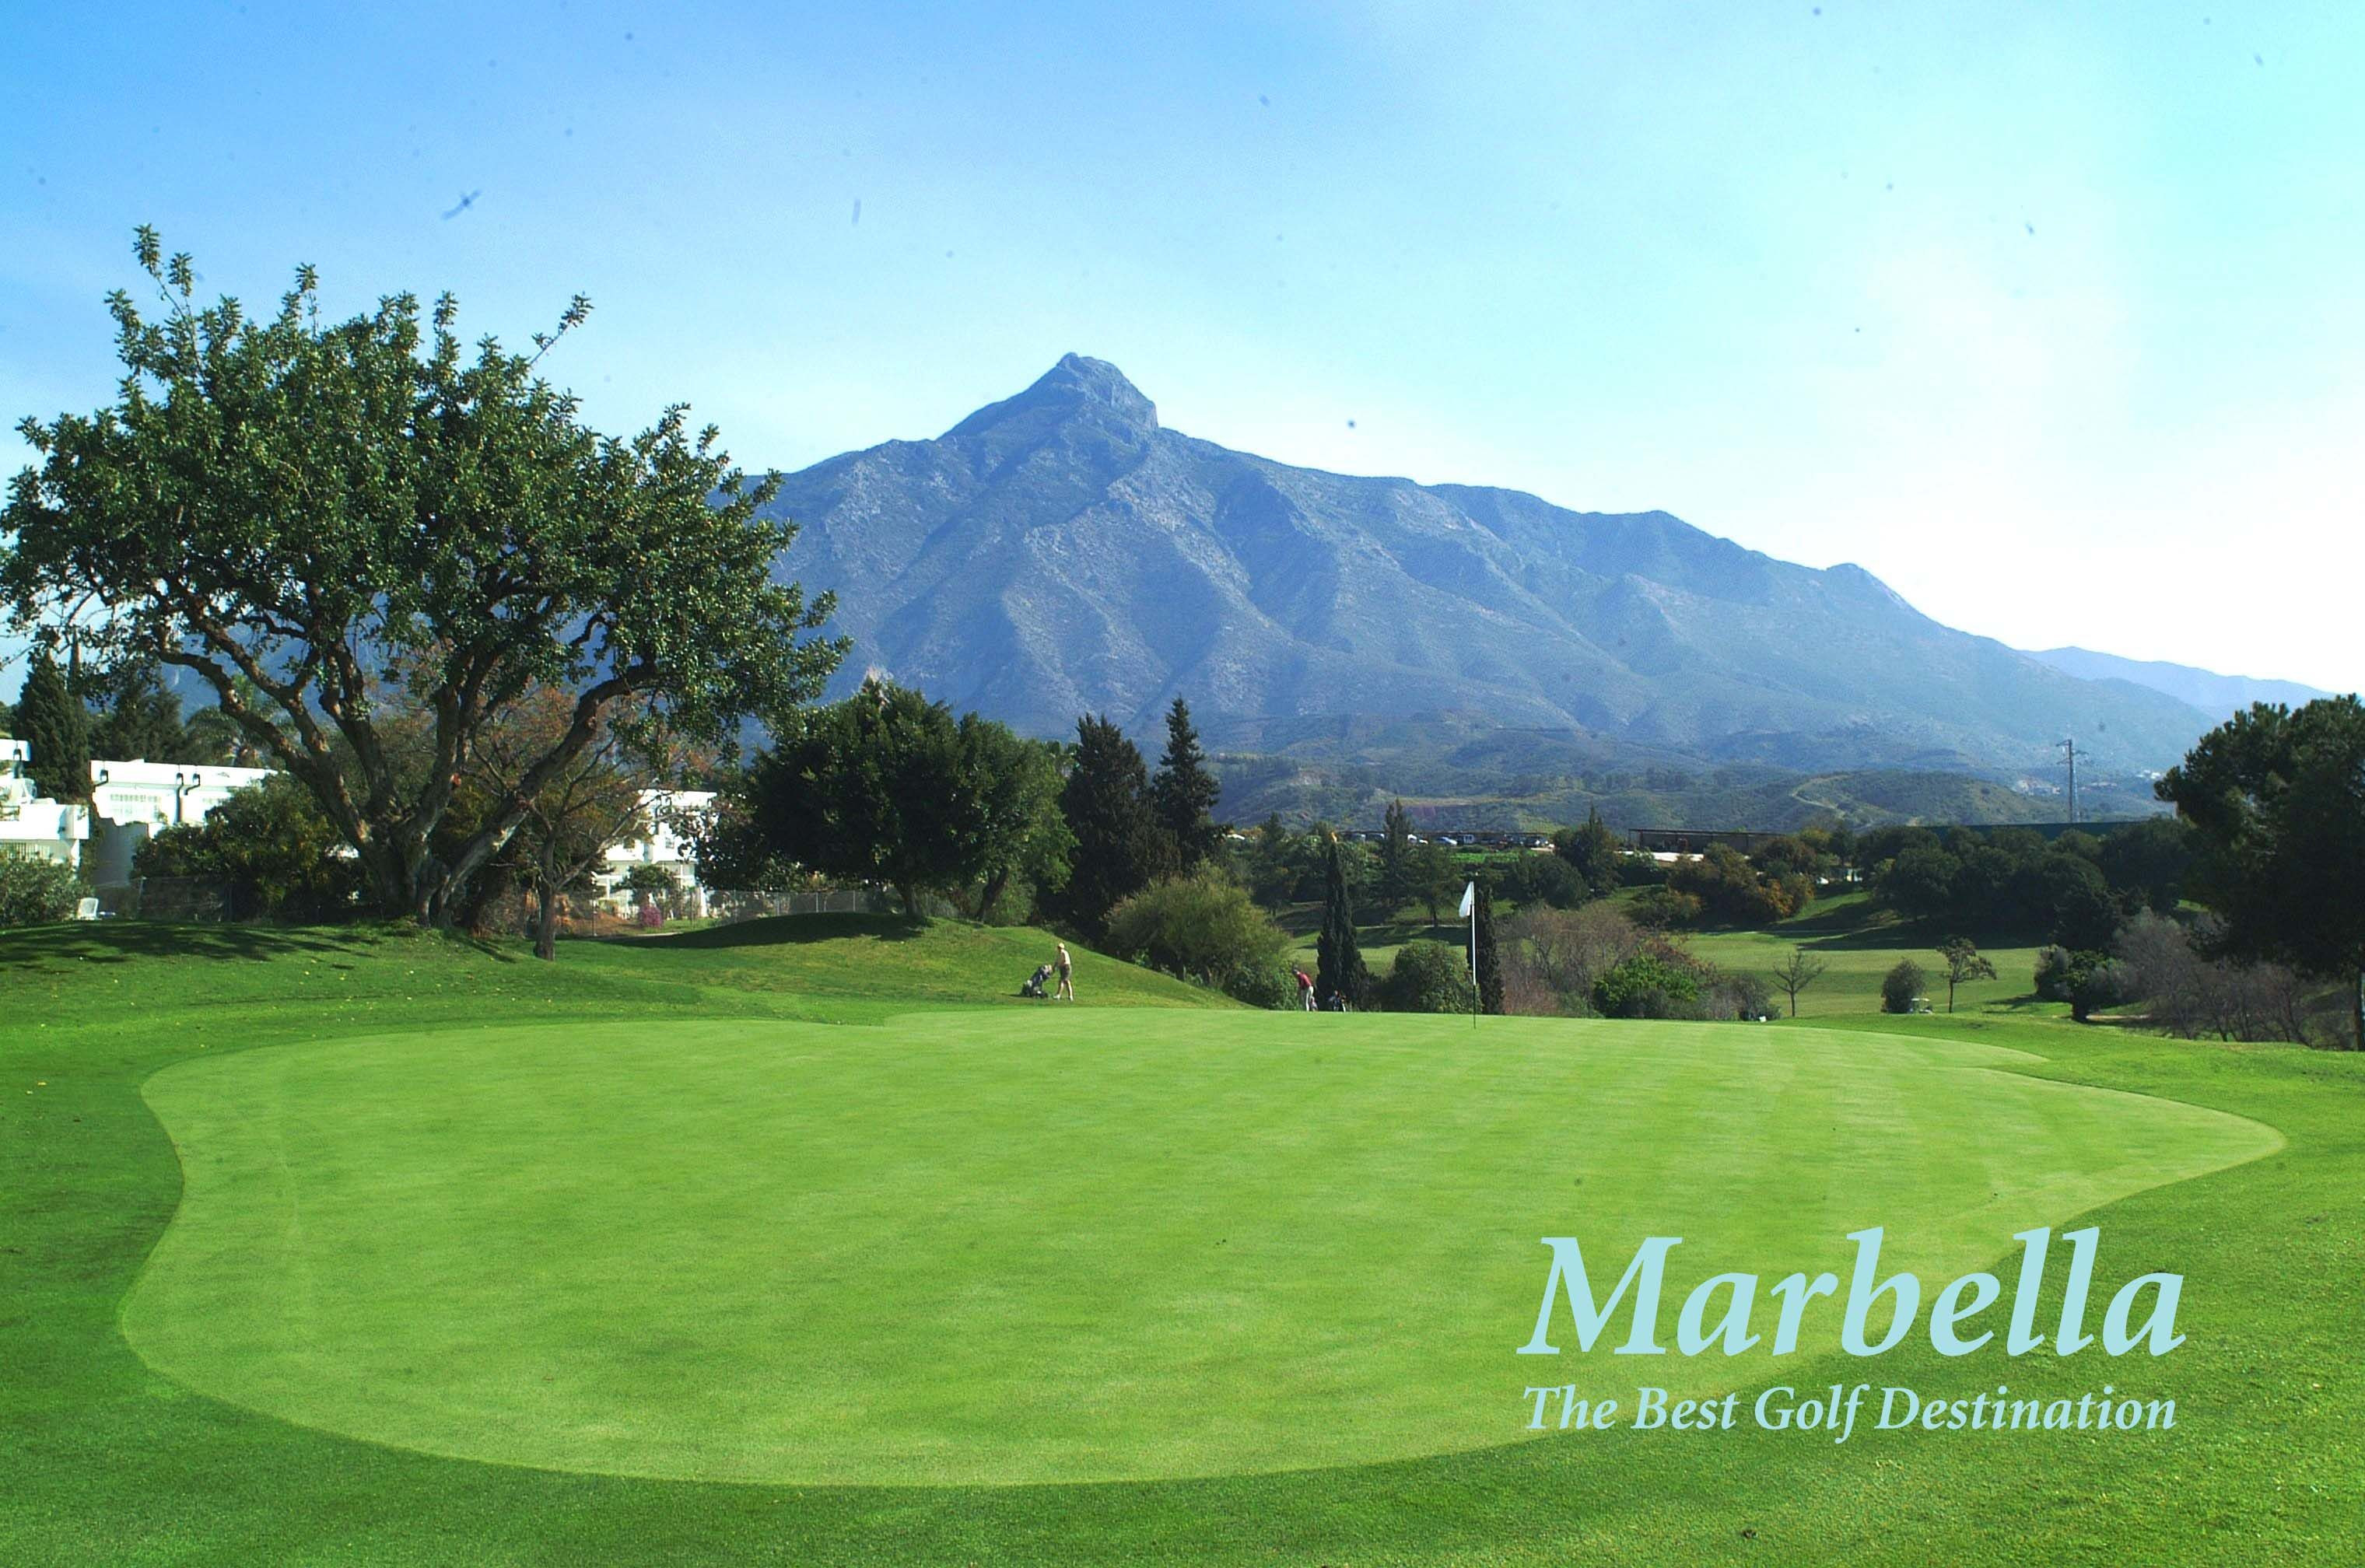 marbella 15 golf courses just for you marbella golf